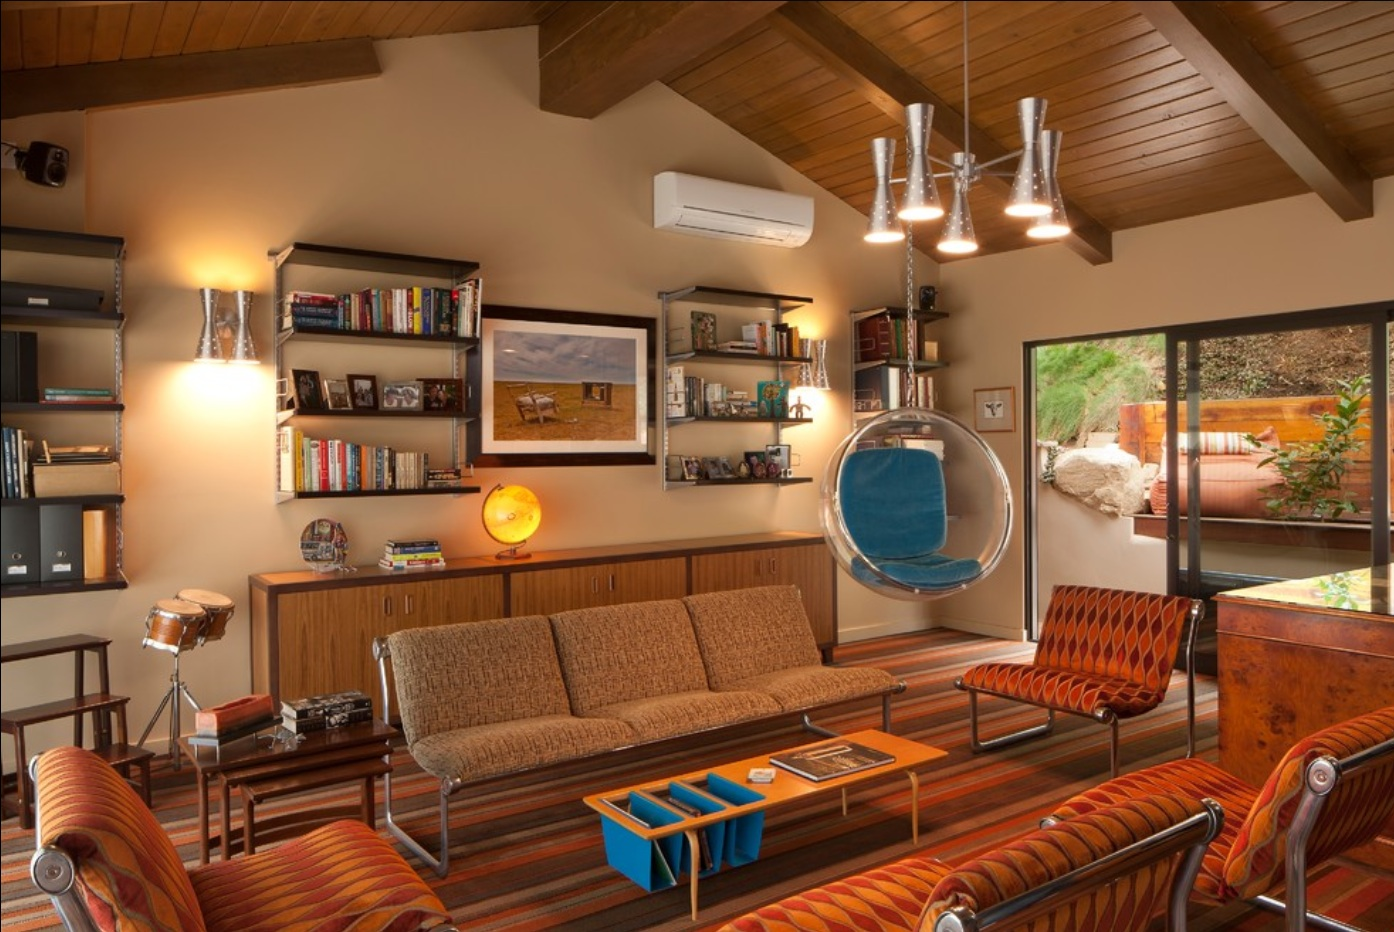 Photos of 2013 the most popular midcentury modern spaces for Modern interior